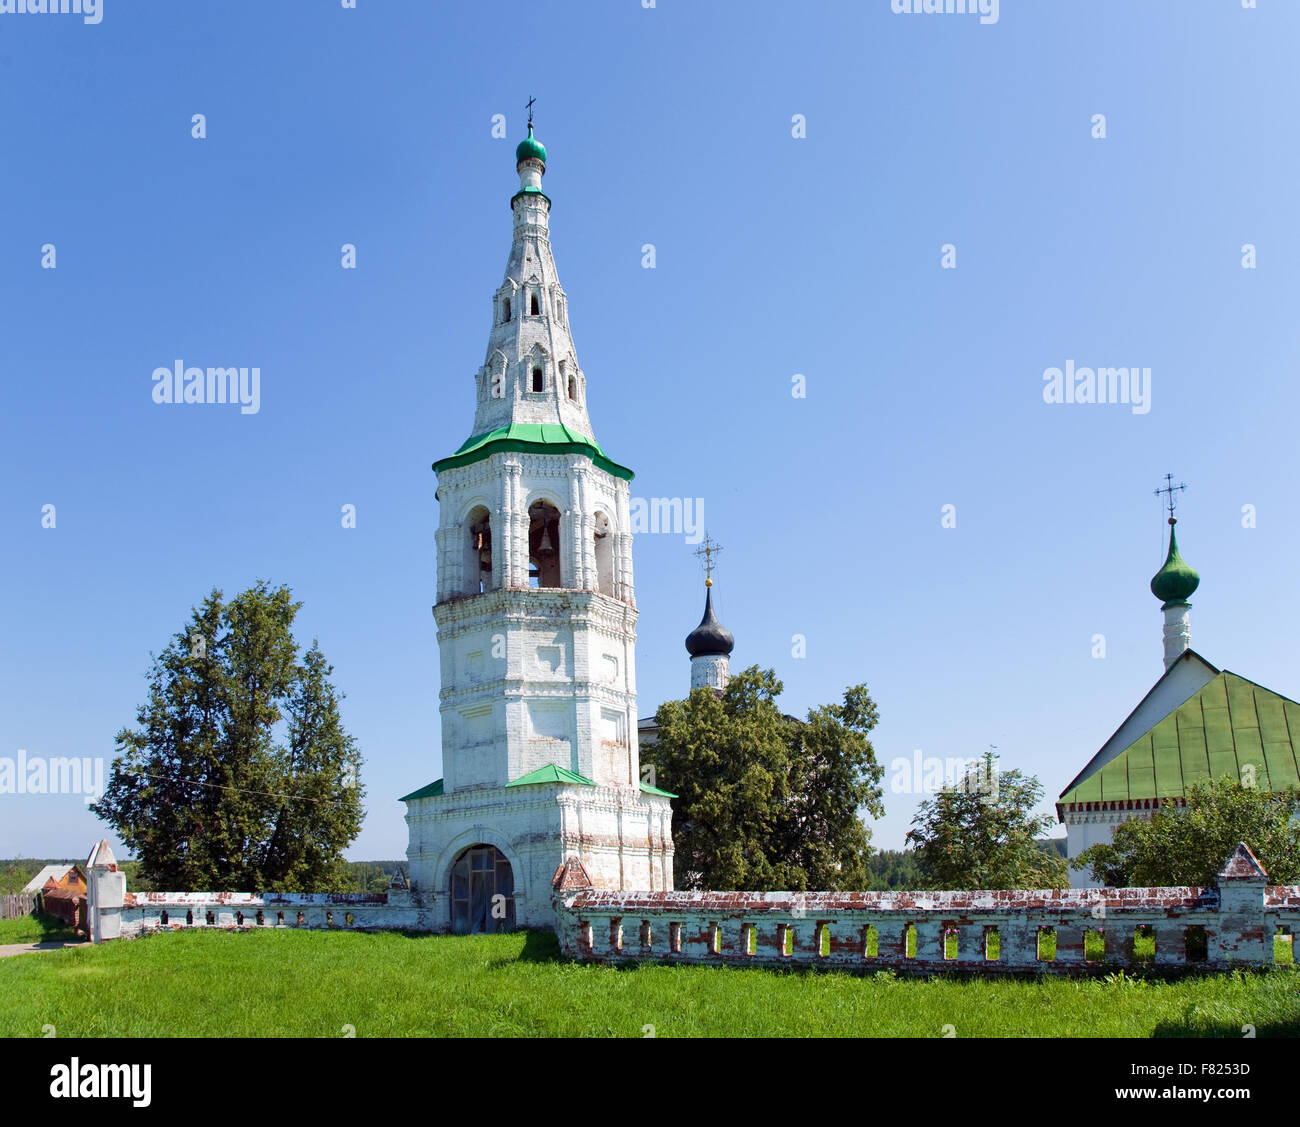 Temple complexes in Kideksha built in the 12th - early 13th century (Russia) - Stock Image